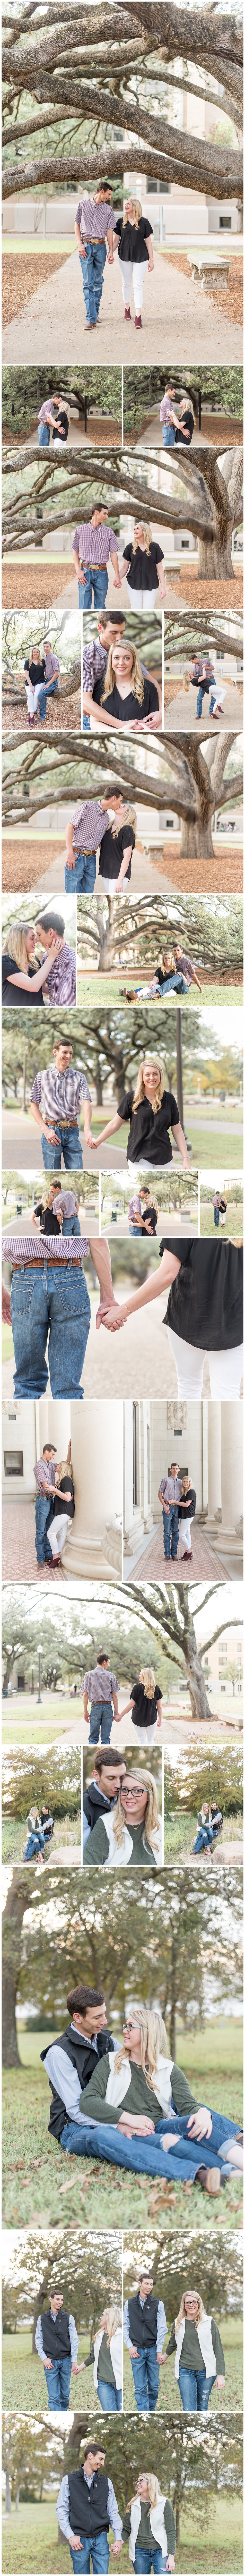 Texas A&M University/Research Park Engagement Session | College Station, TX | Katelyn Todd Photography